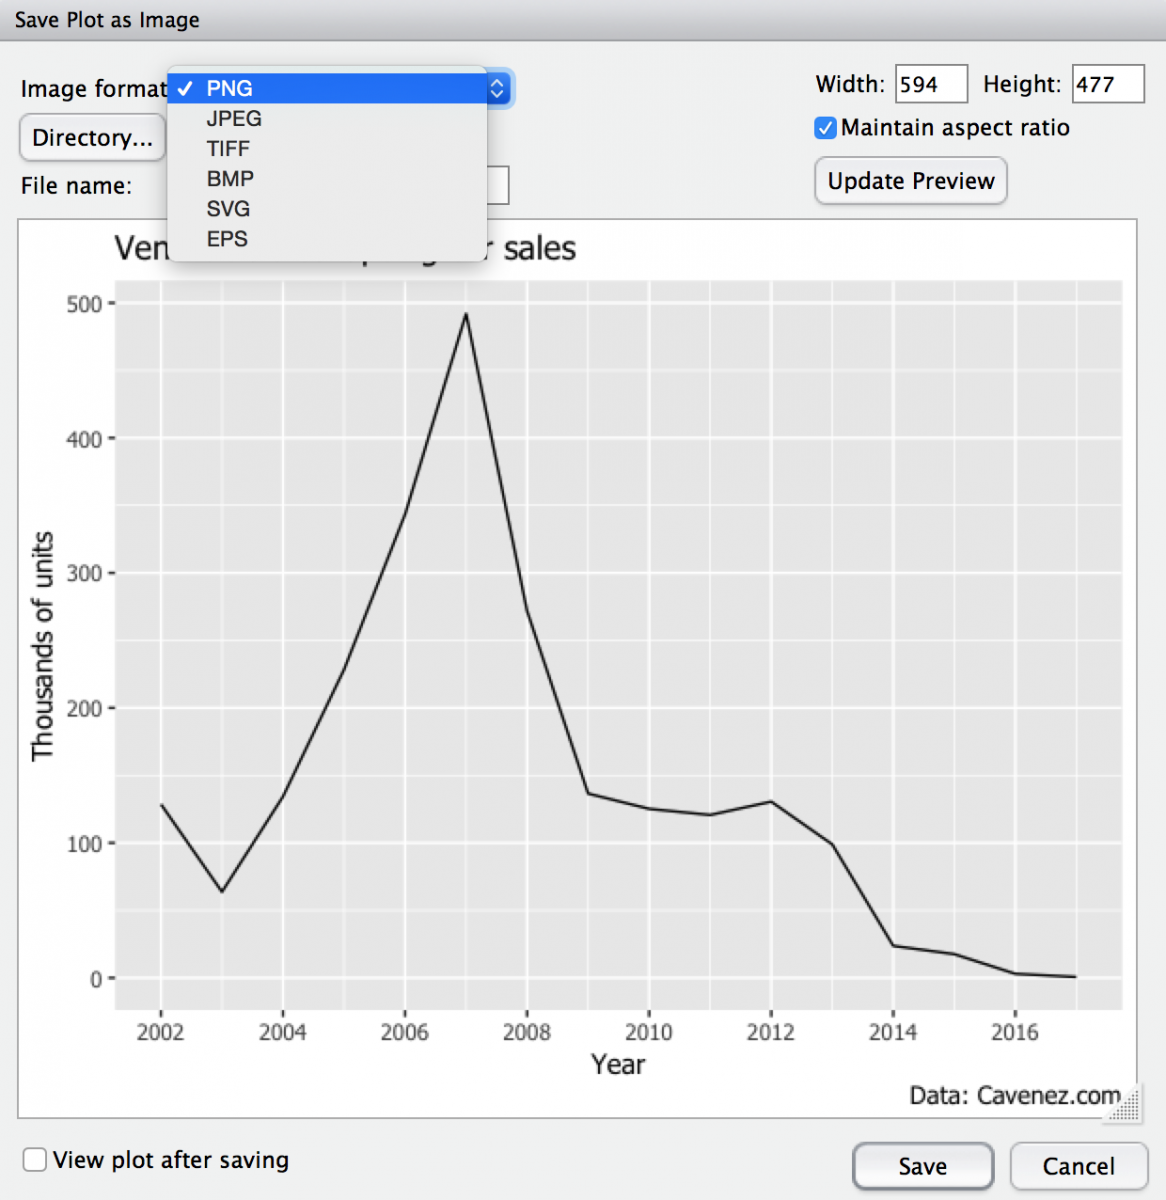 How to create a simple line chart in R - Storybench